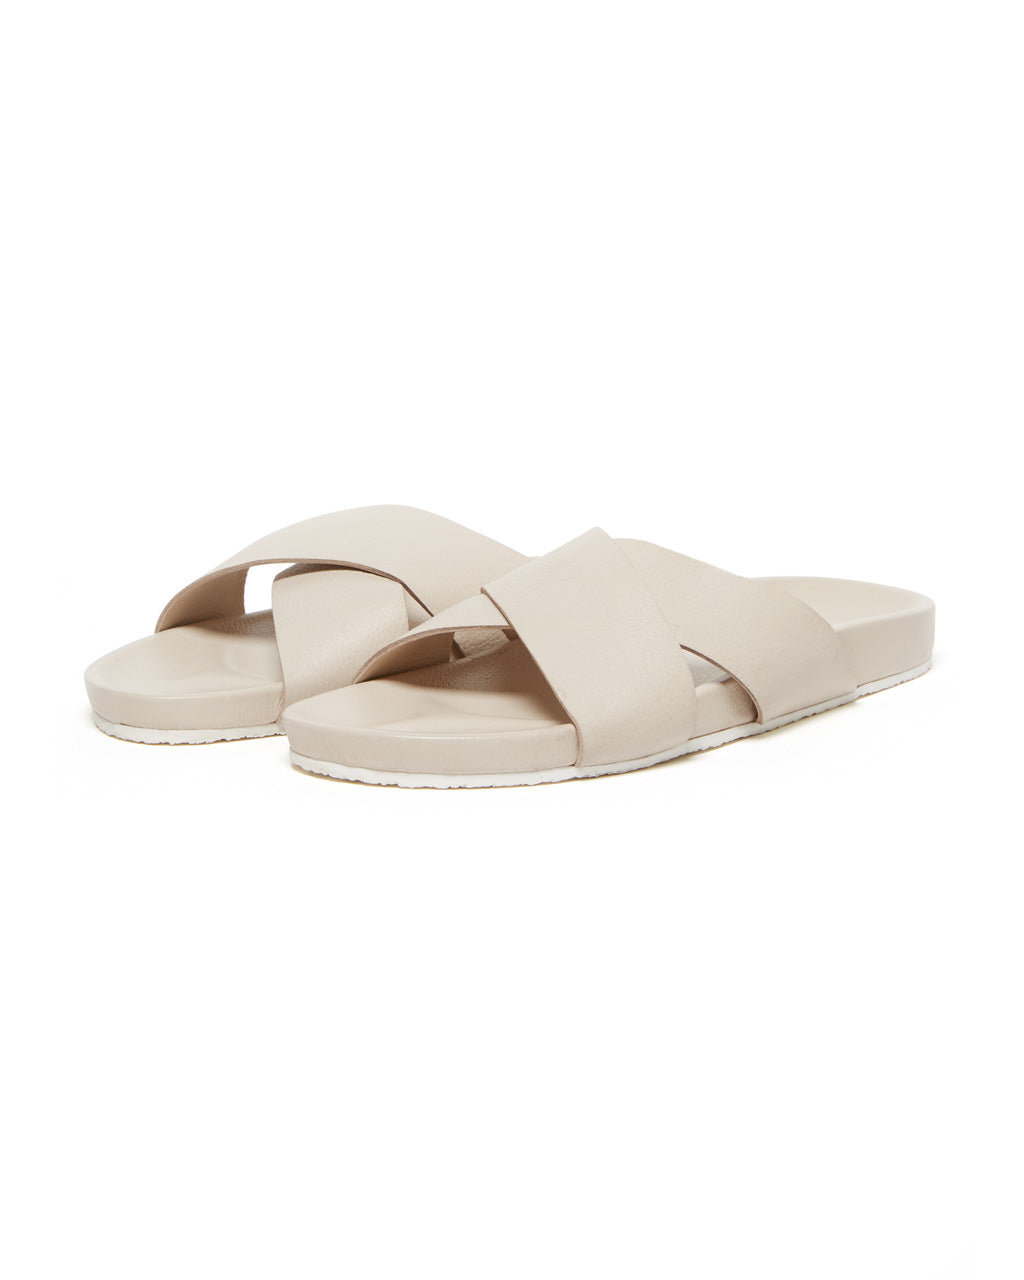 Lighthearted Sandal - Off White by